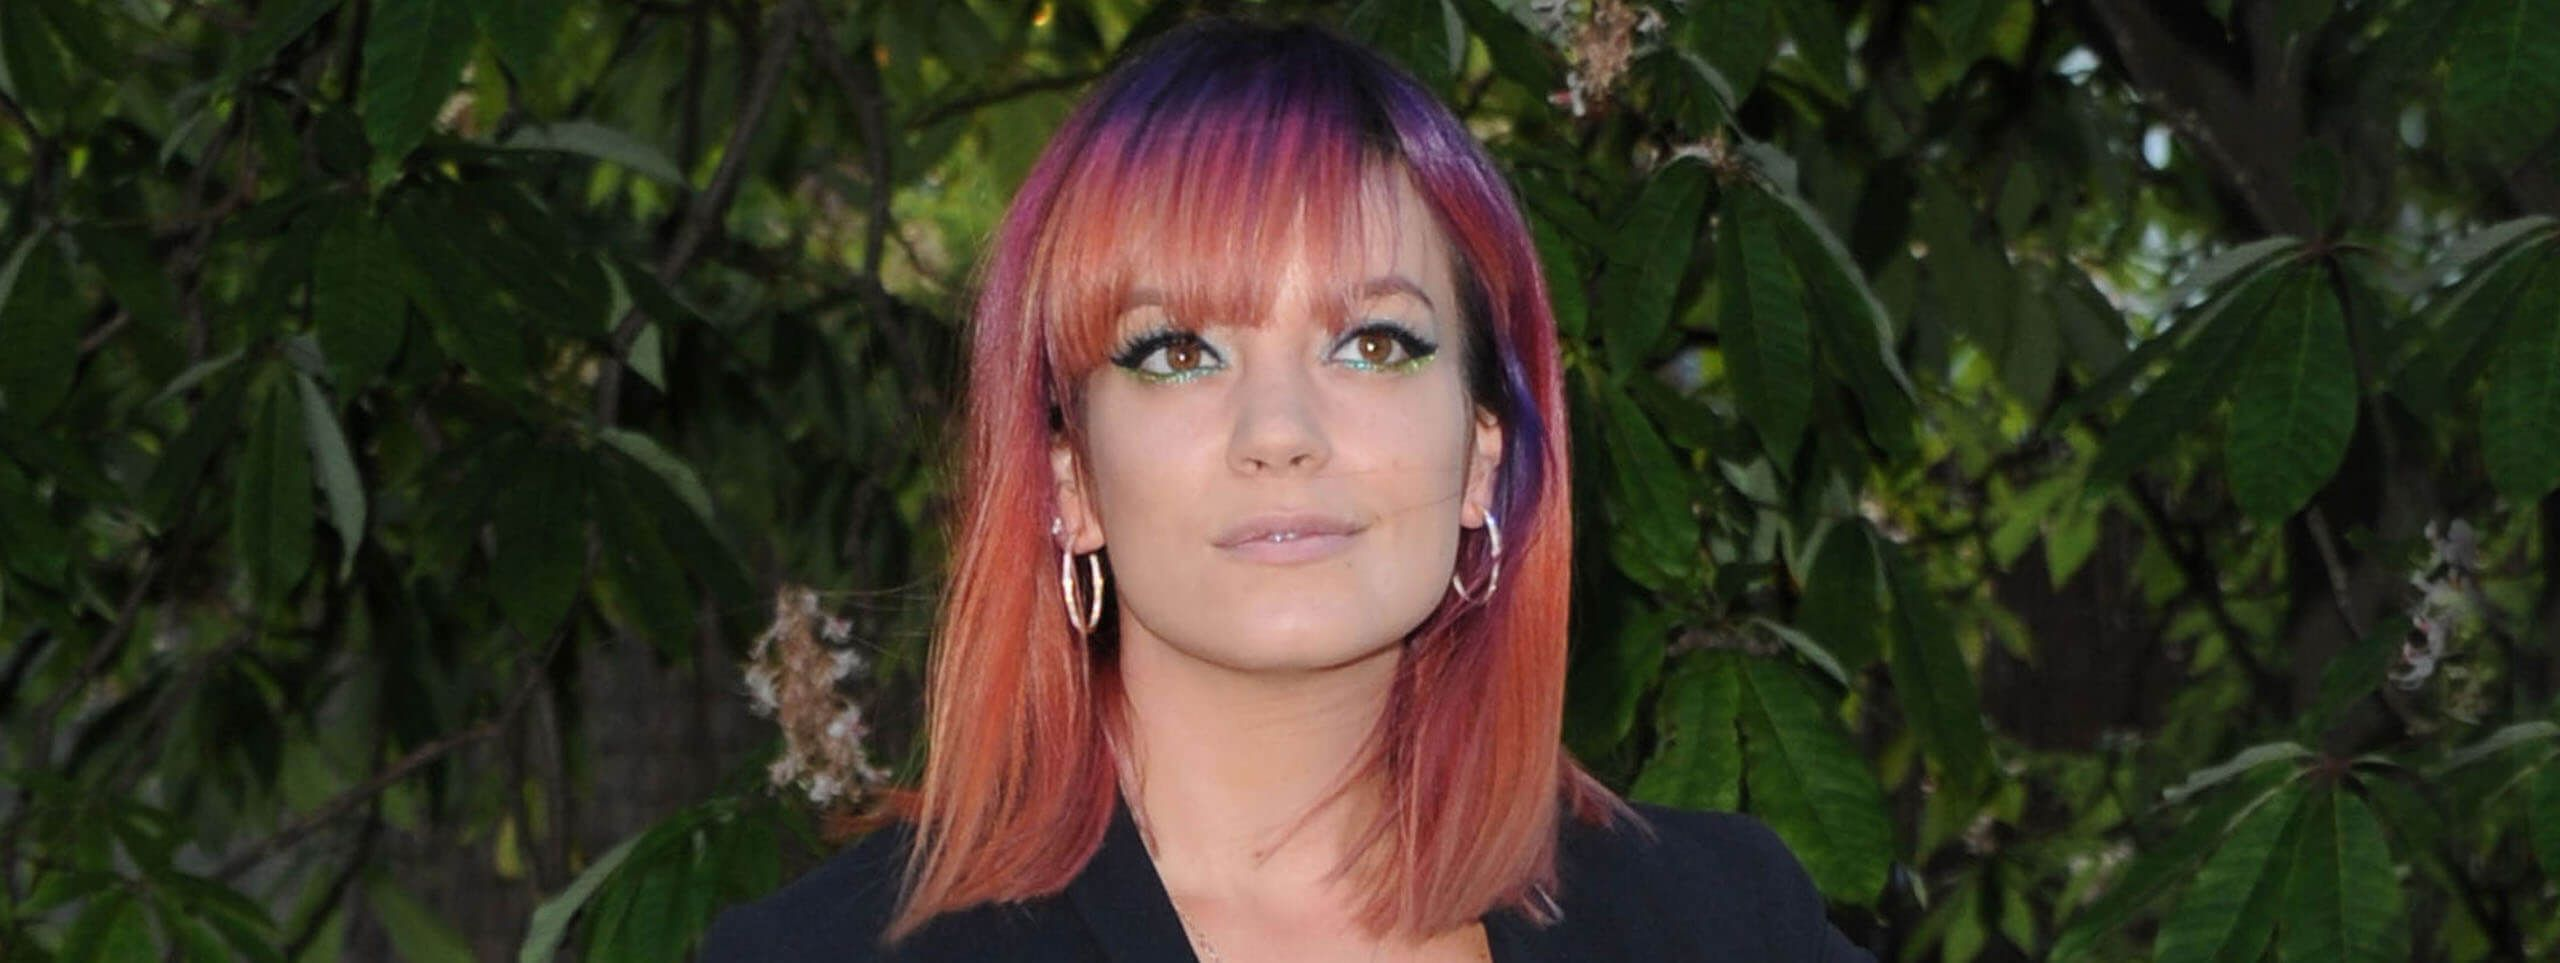 Woman with multicolored hairstyle